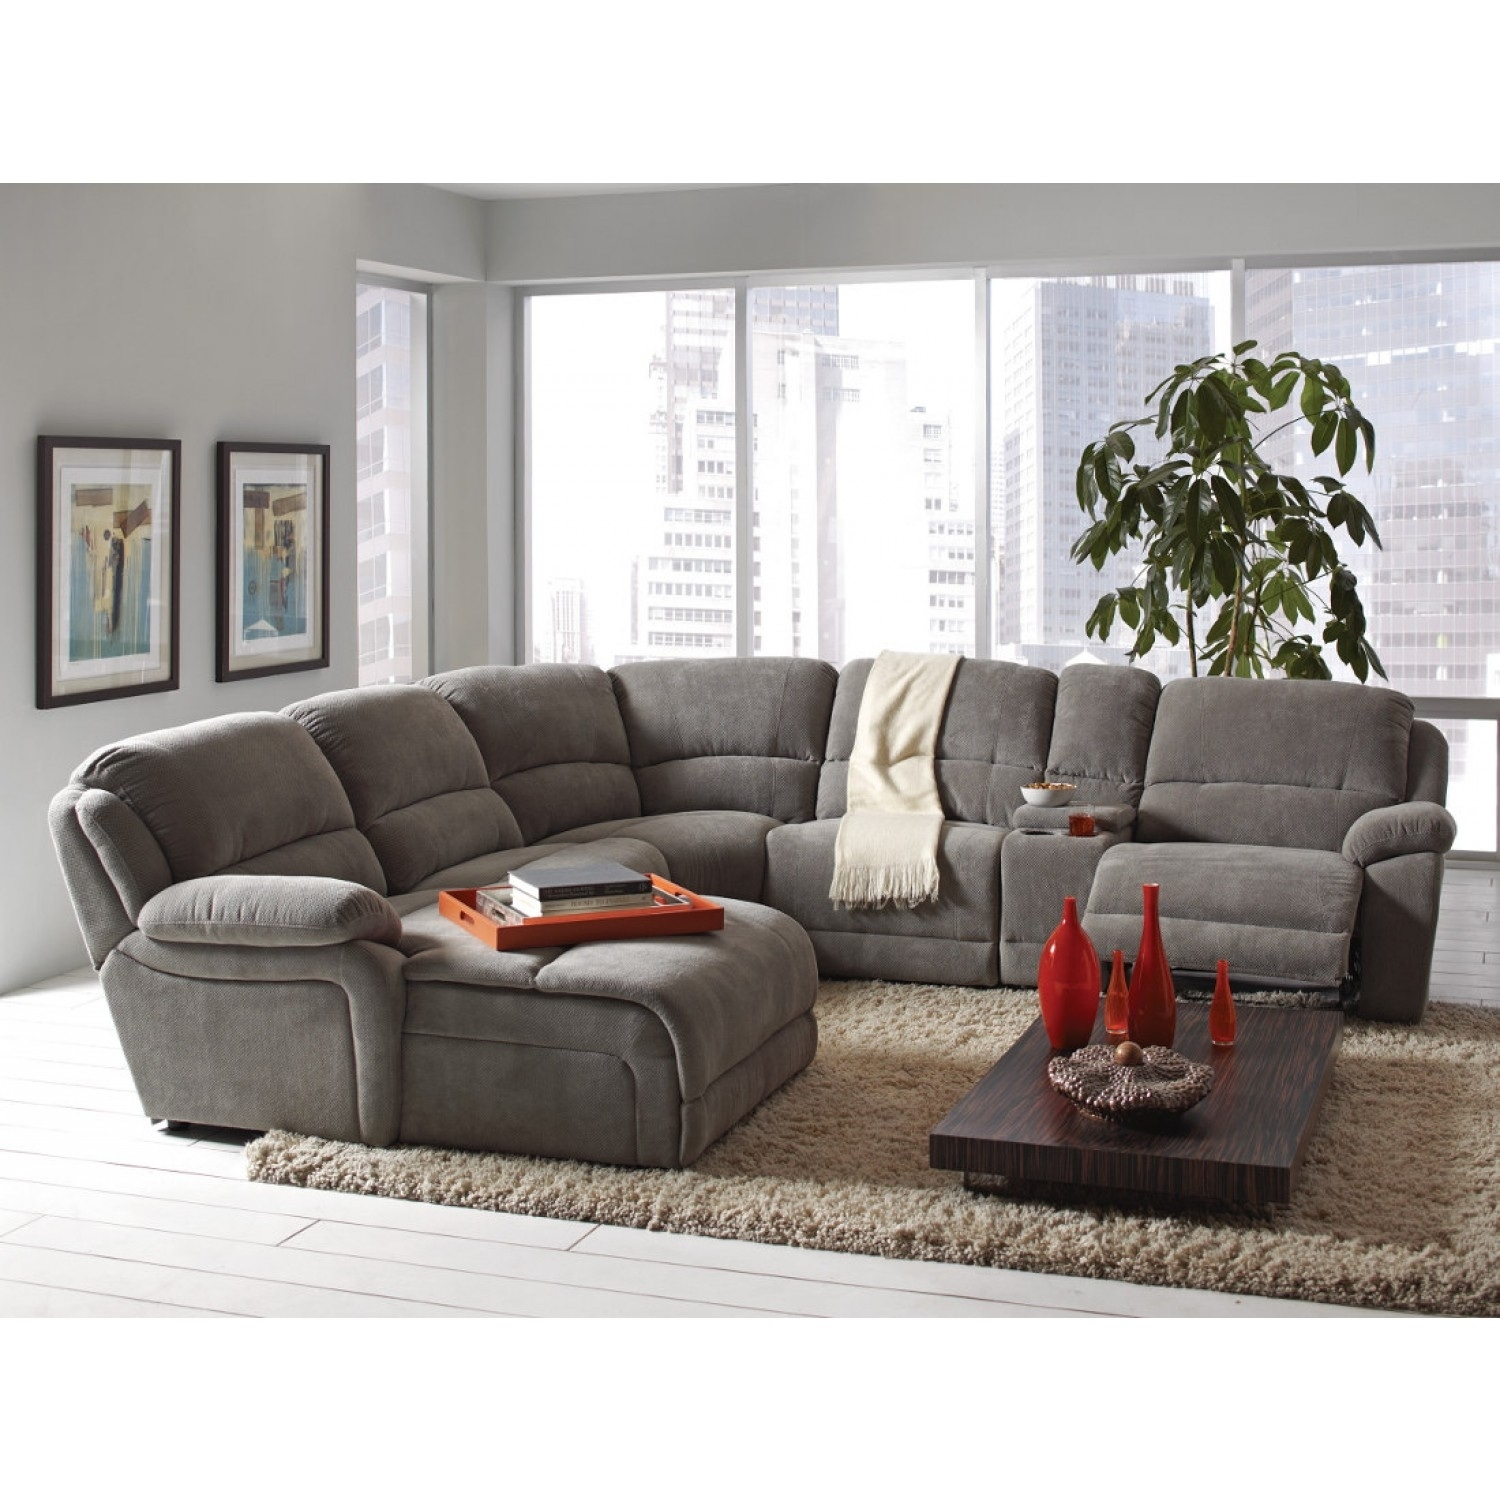 Coaster Mackenzie Silver 6 Piece Reclining Sectional Sofa With Regarding Grand Rapids Mi Sectional Sofas (Image 6 of 10)